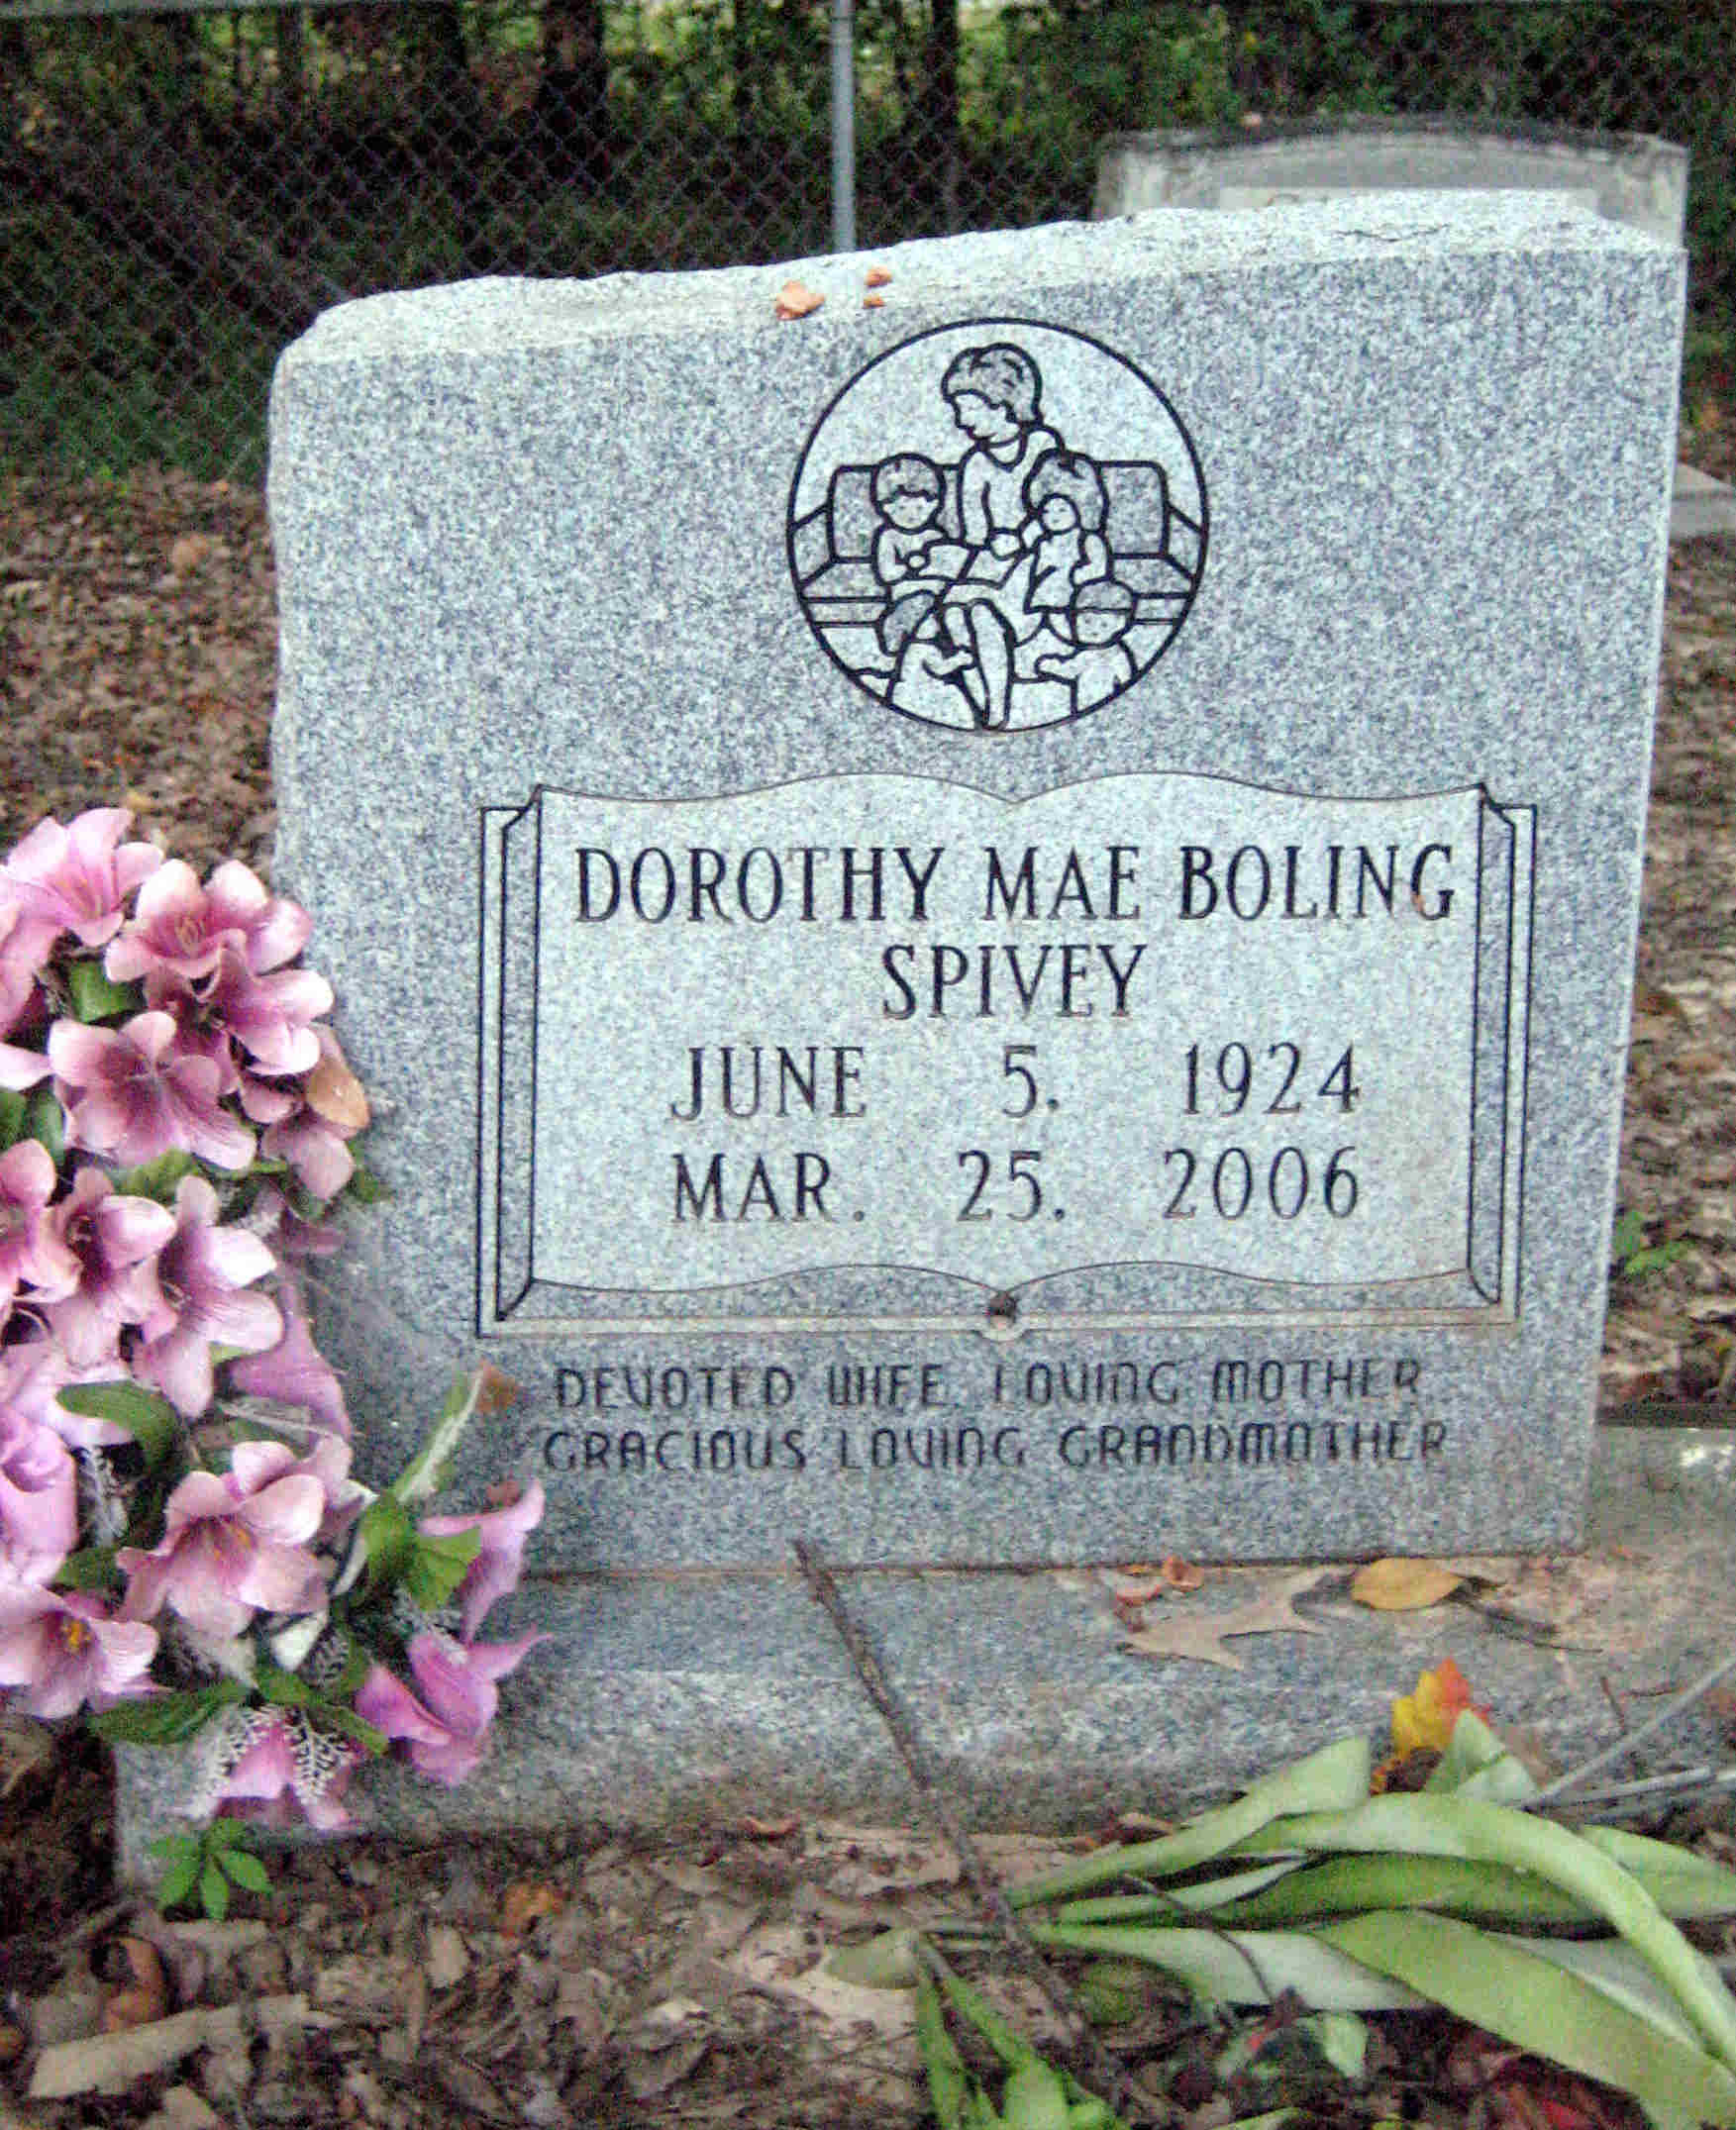 Ina Mae Spivey Delightful dorothy mae boling spivey (1924-2006) - find a grave memorial